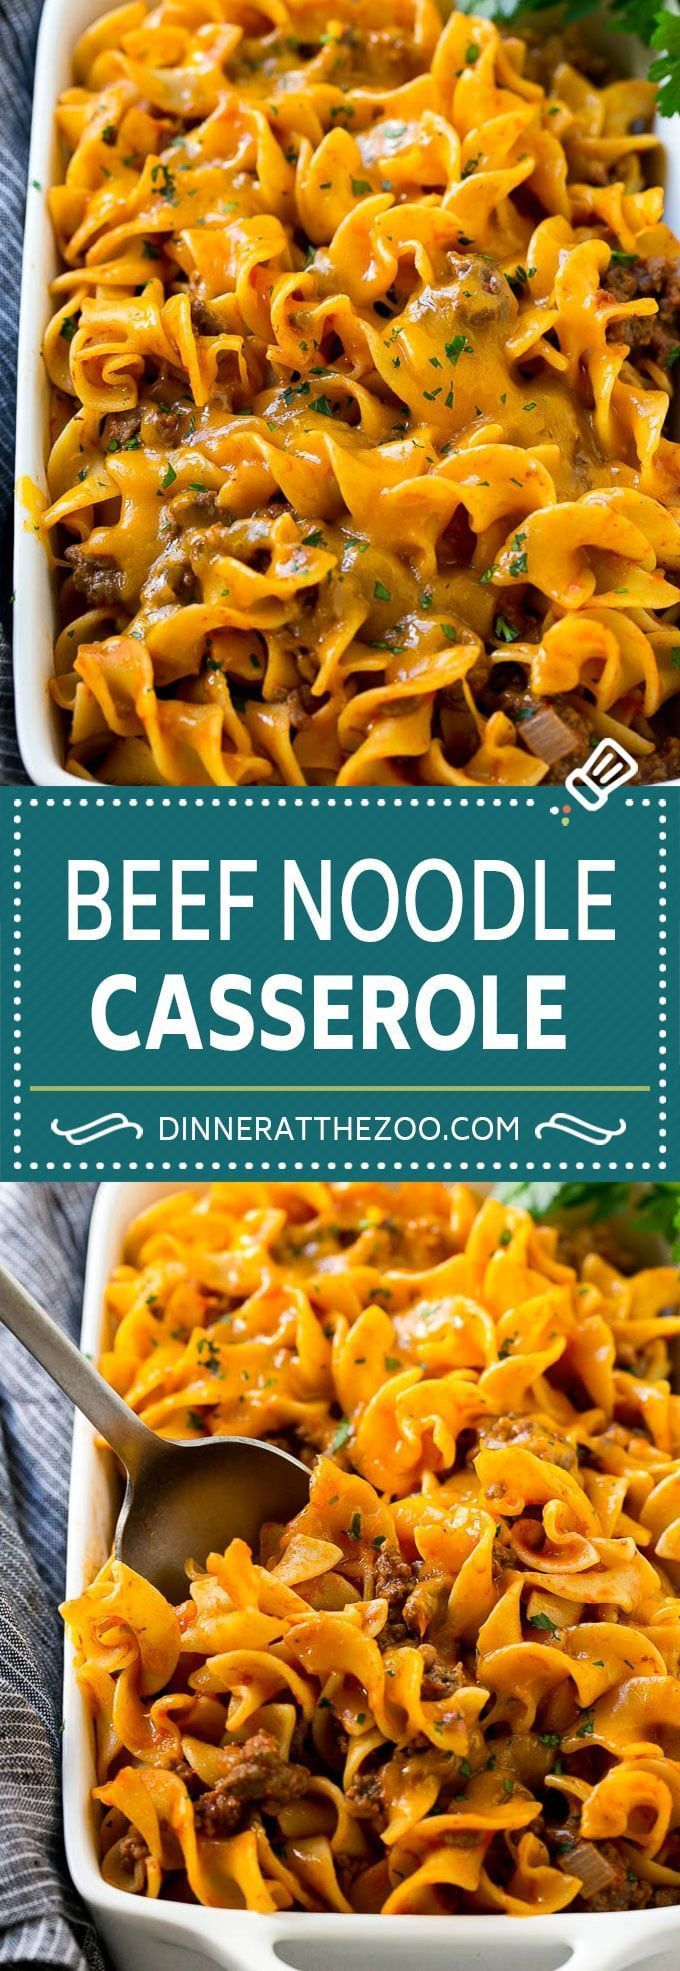 Beef Noodle Casserole Simple Yet Hearty Beef Casserole That Is Cheesy Kid Friendly And Quick To Whip Beef Recipes Easy Beef Dinner Beef Recipes For Dinner